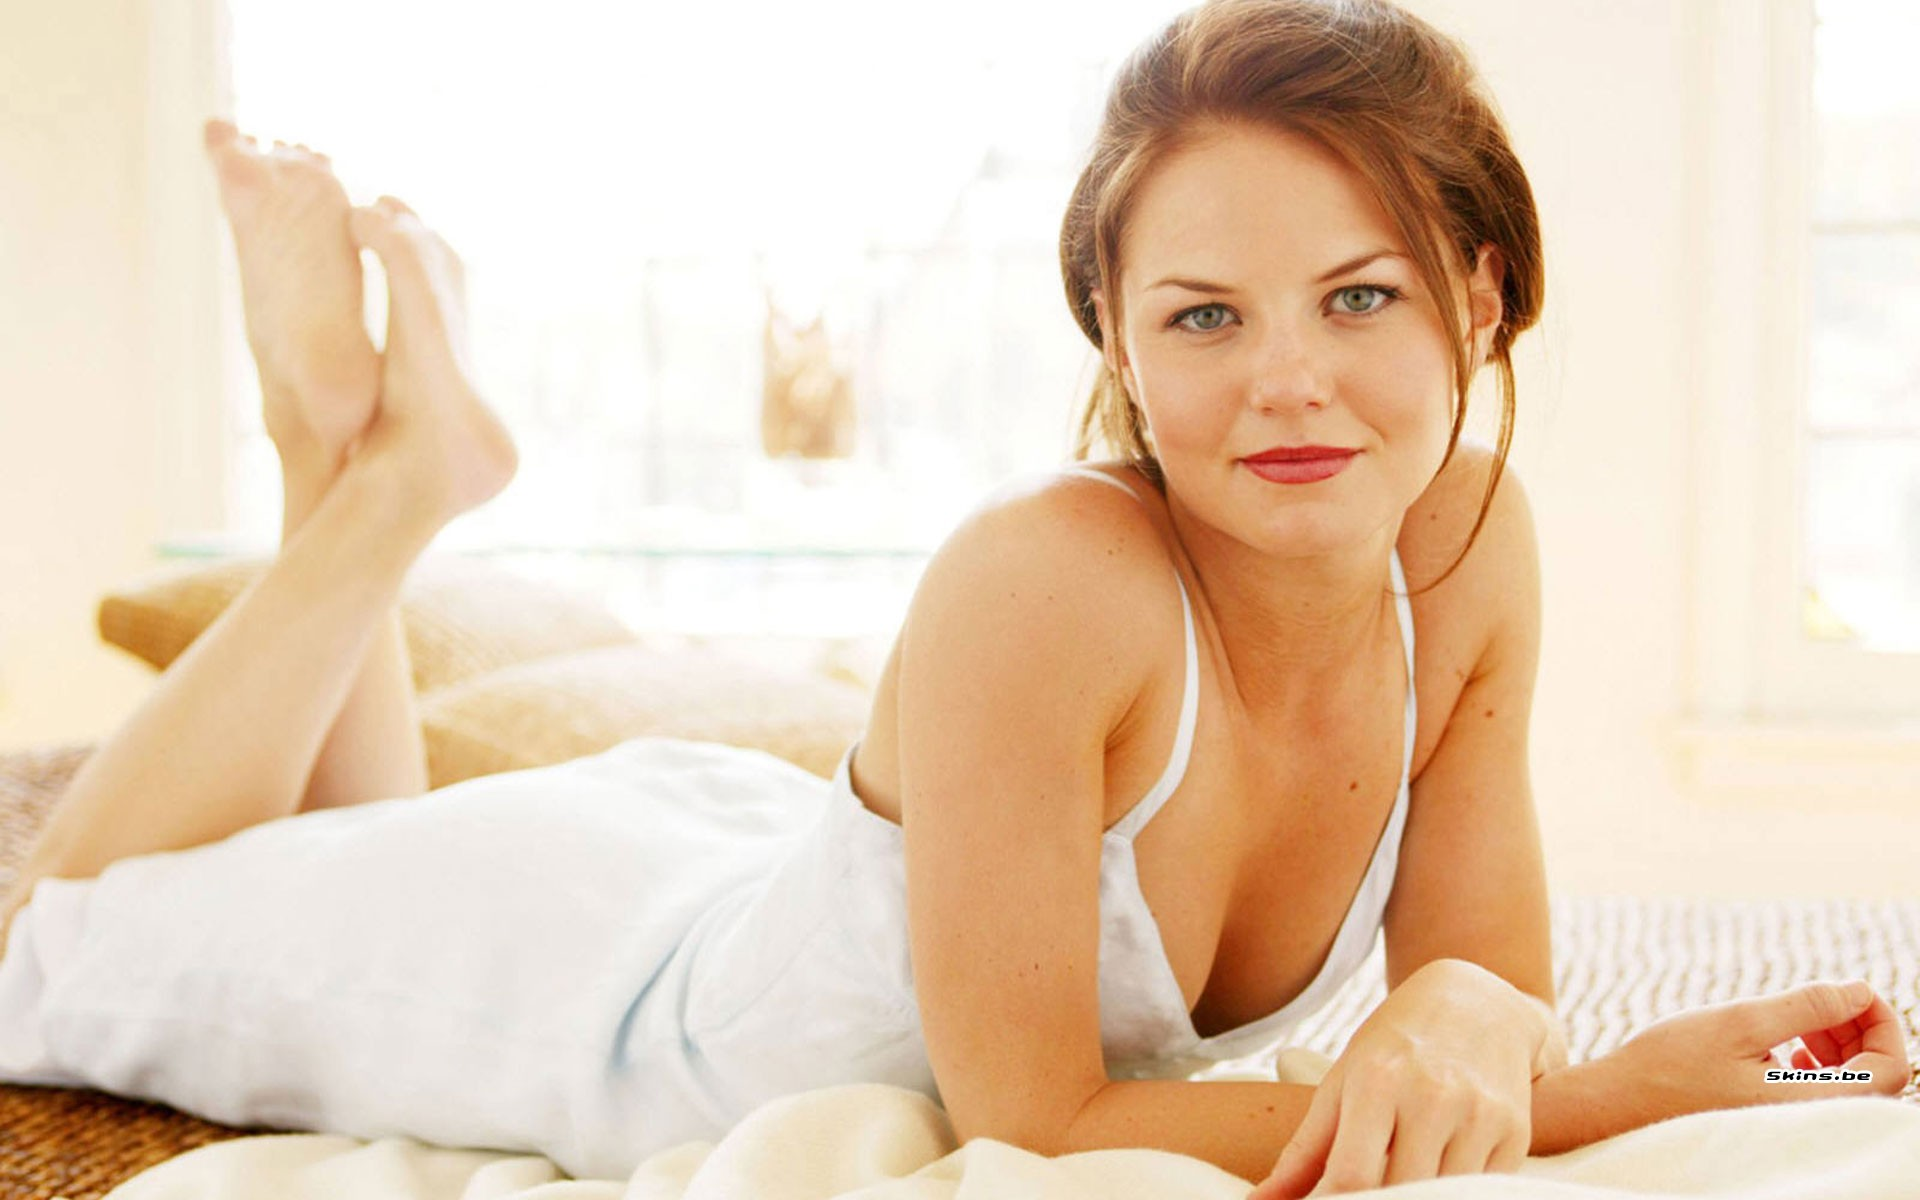 Jennifer Morrison HD Wallpapers And Photos download 1920x1200